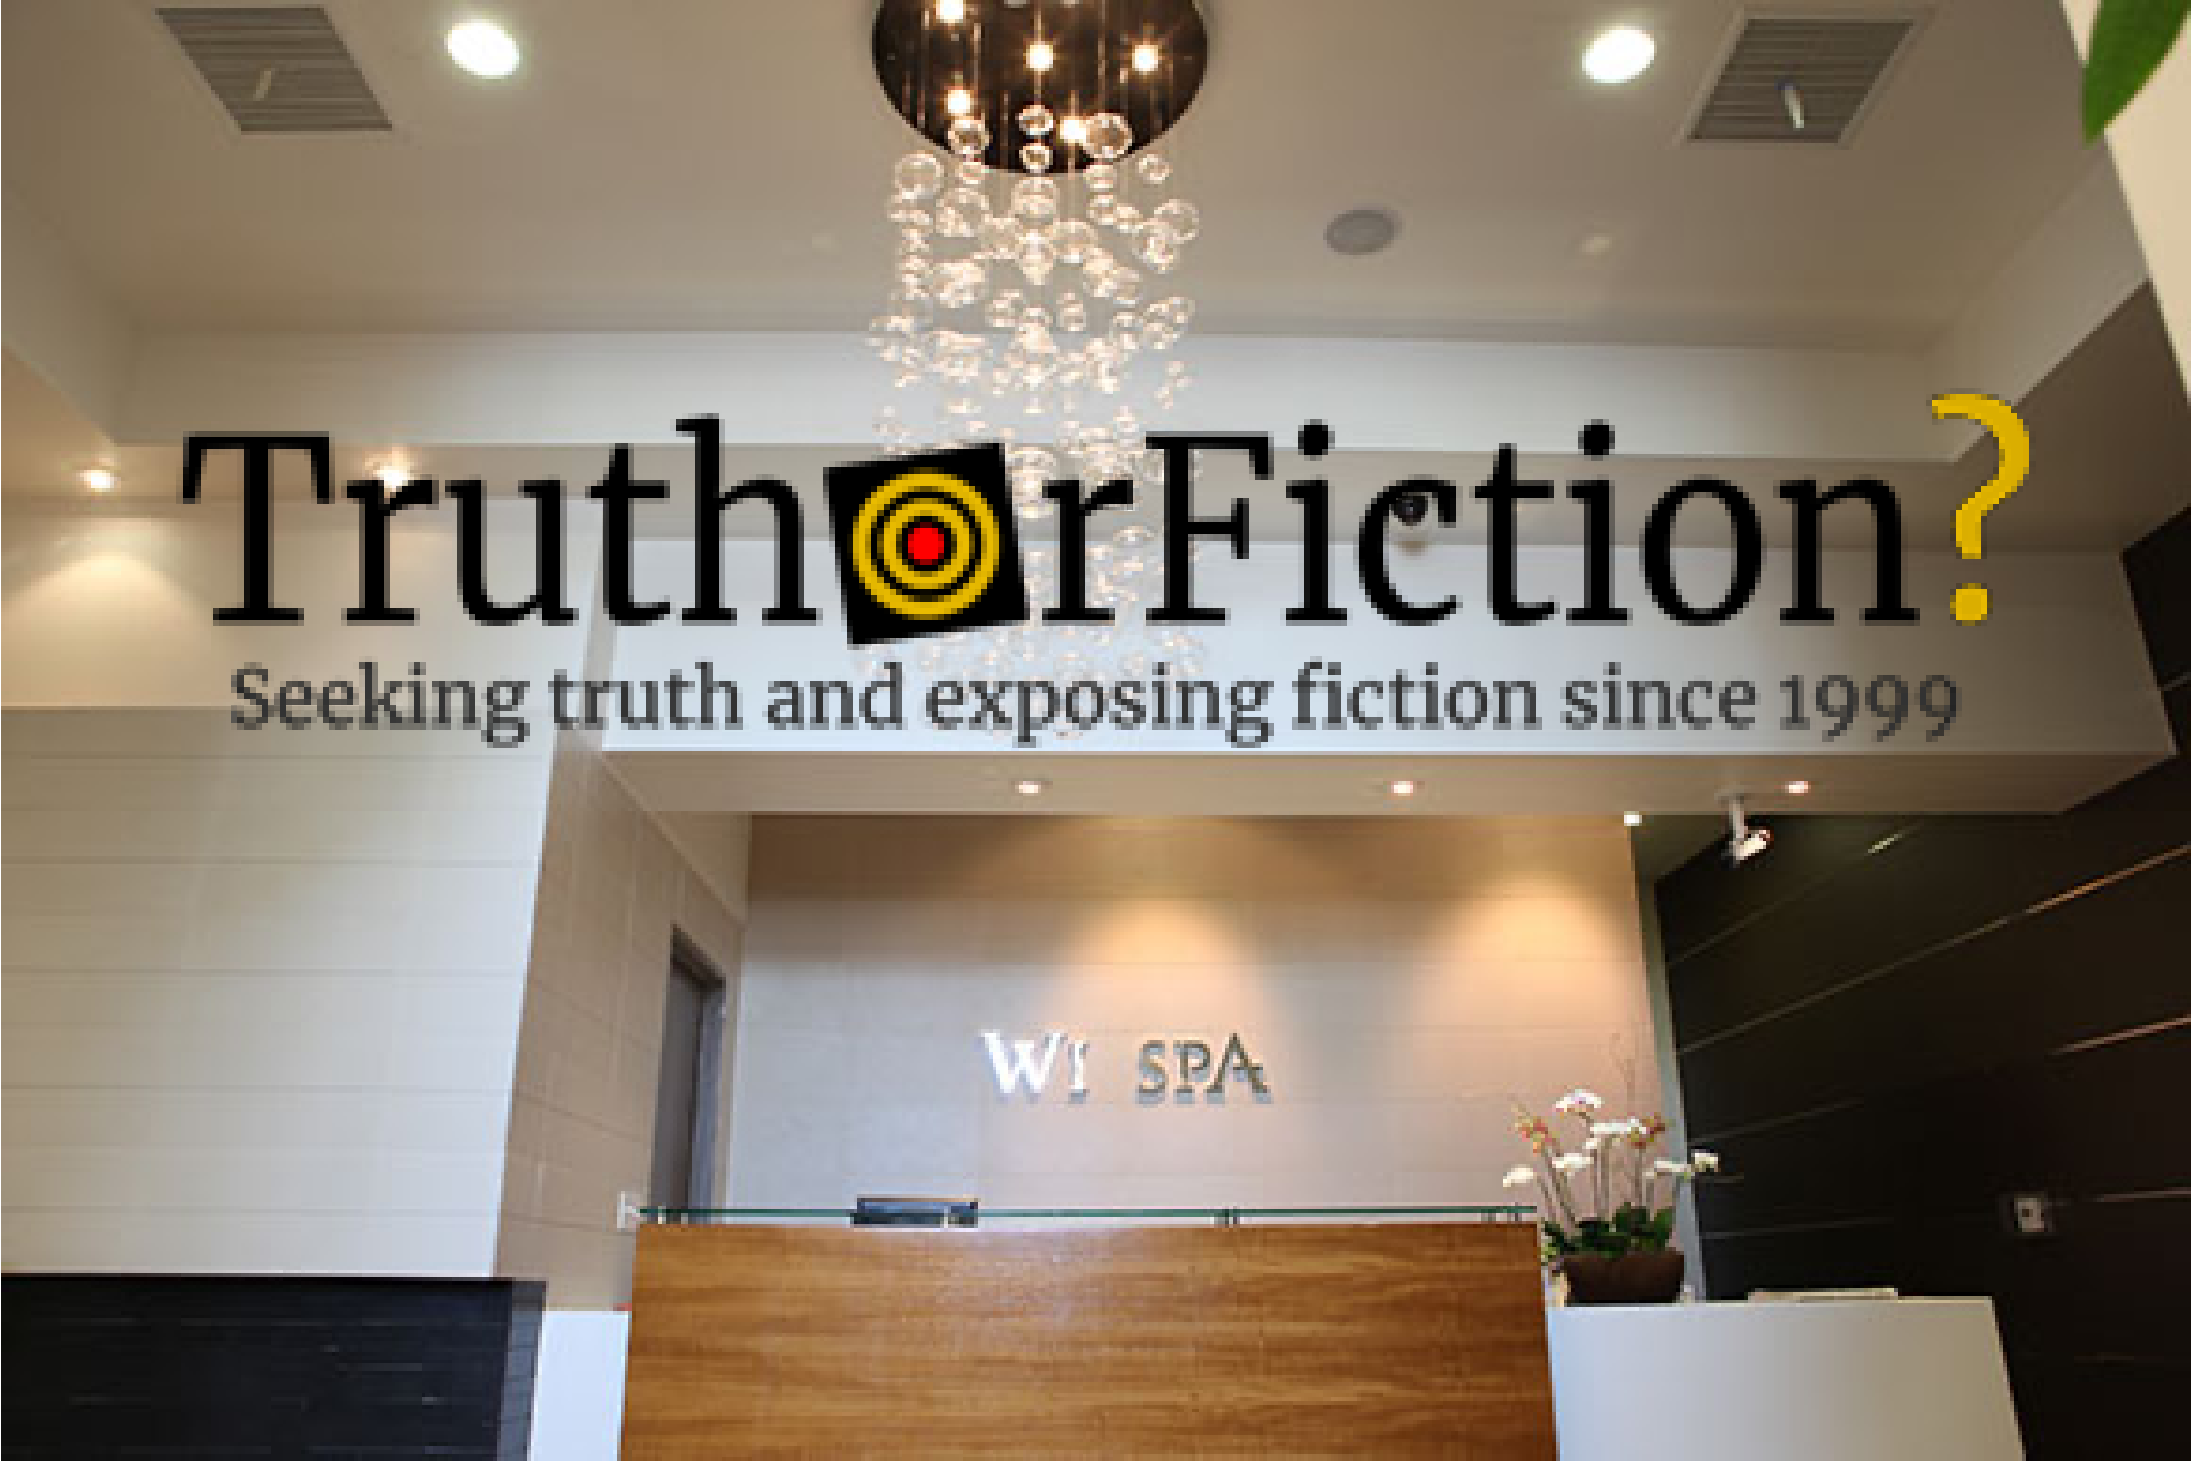 Wi Spa Weaponized Disinformation Campaign